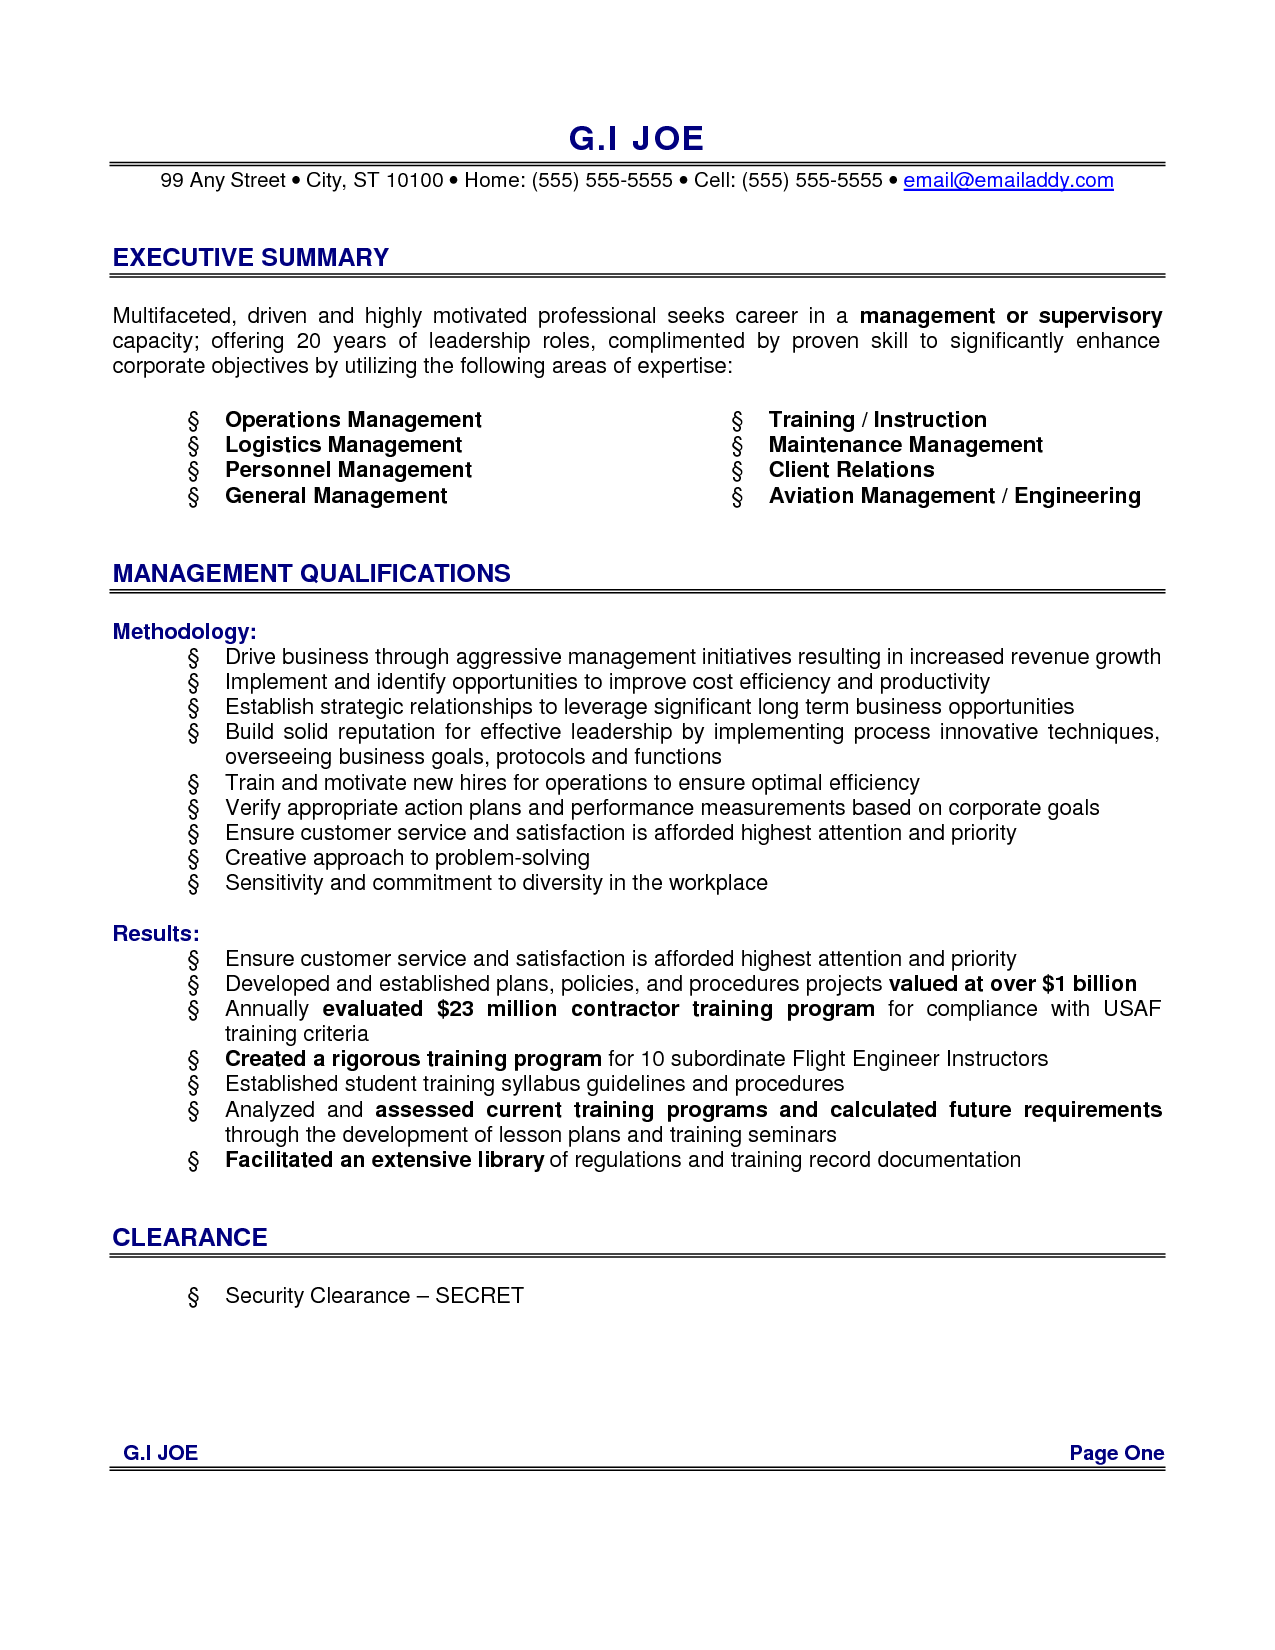 Summary In A Resume | Resume Examples For Executive Summary With Management Qualifications